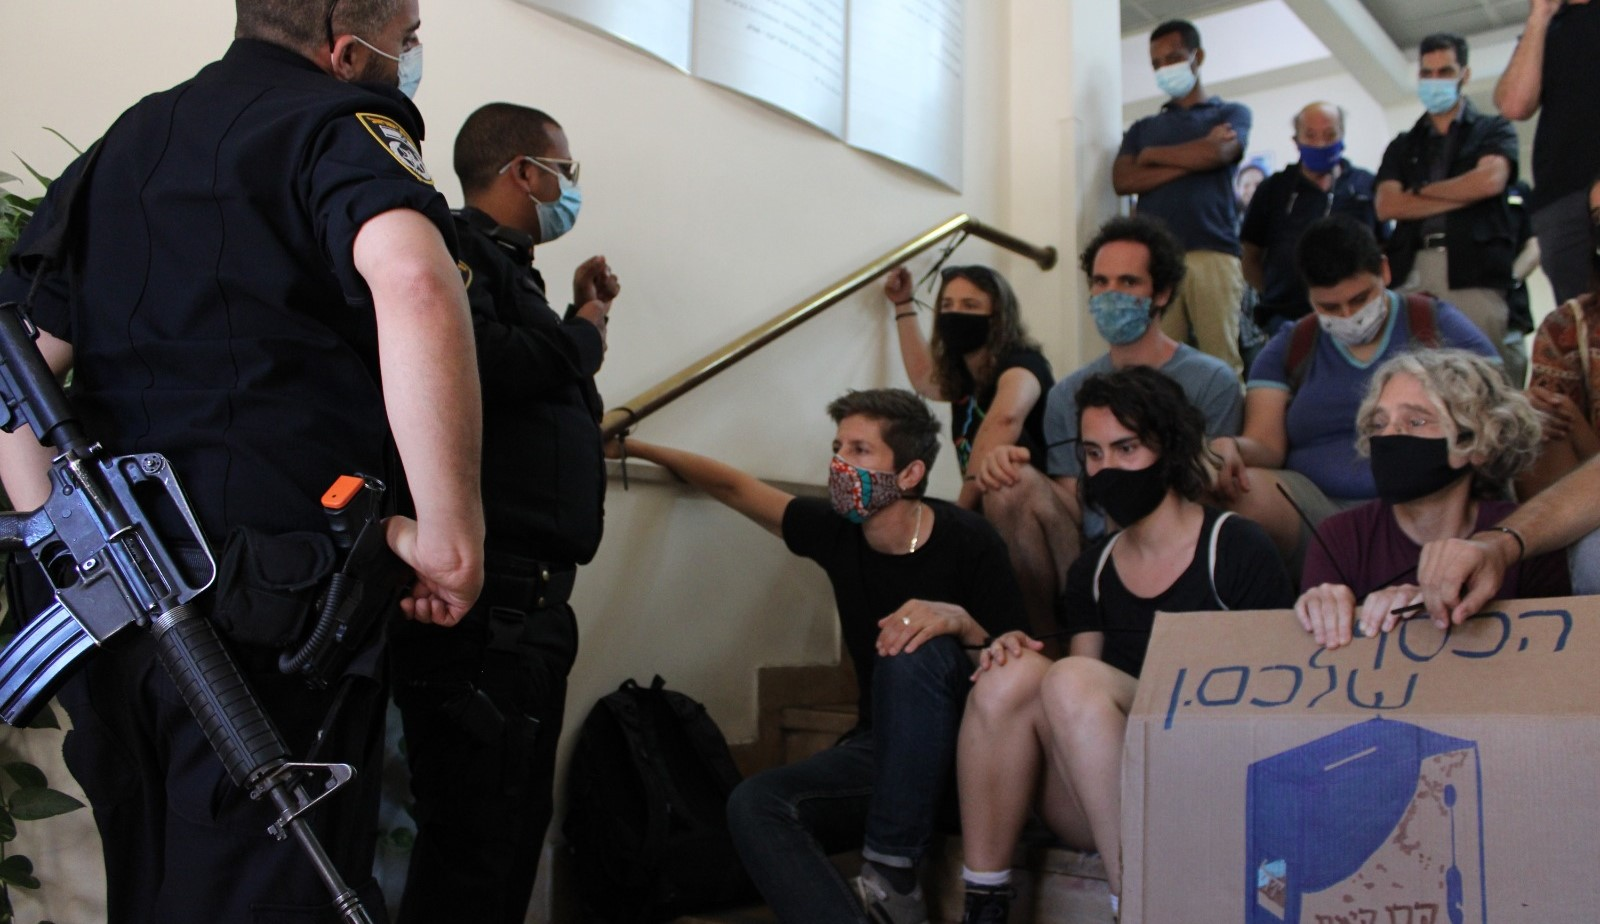 Peace activists blocked the main entrance of the JNF offices in Jerusalem in August 2020, to protest the pending eviction of members of the Palestinian family Sumarin from their home in Silwan, occupied East Jerusalem.